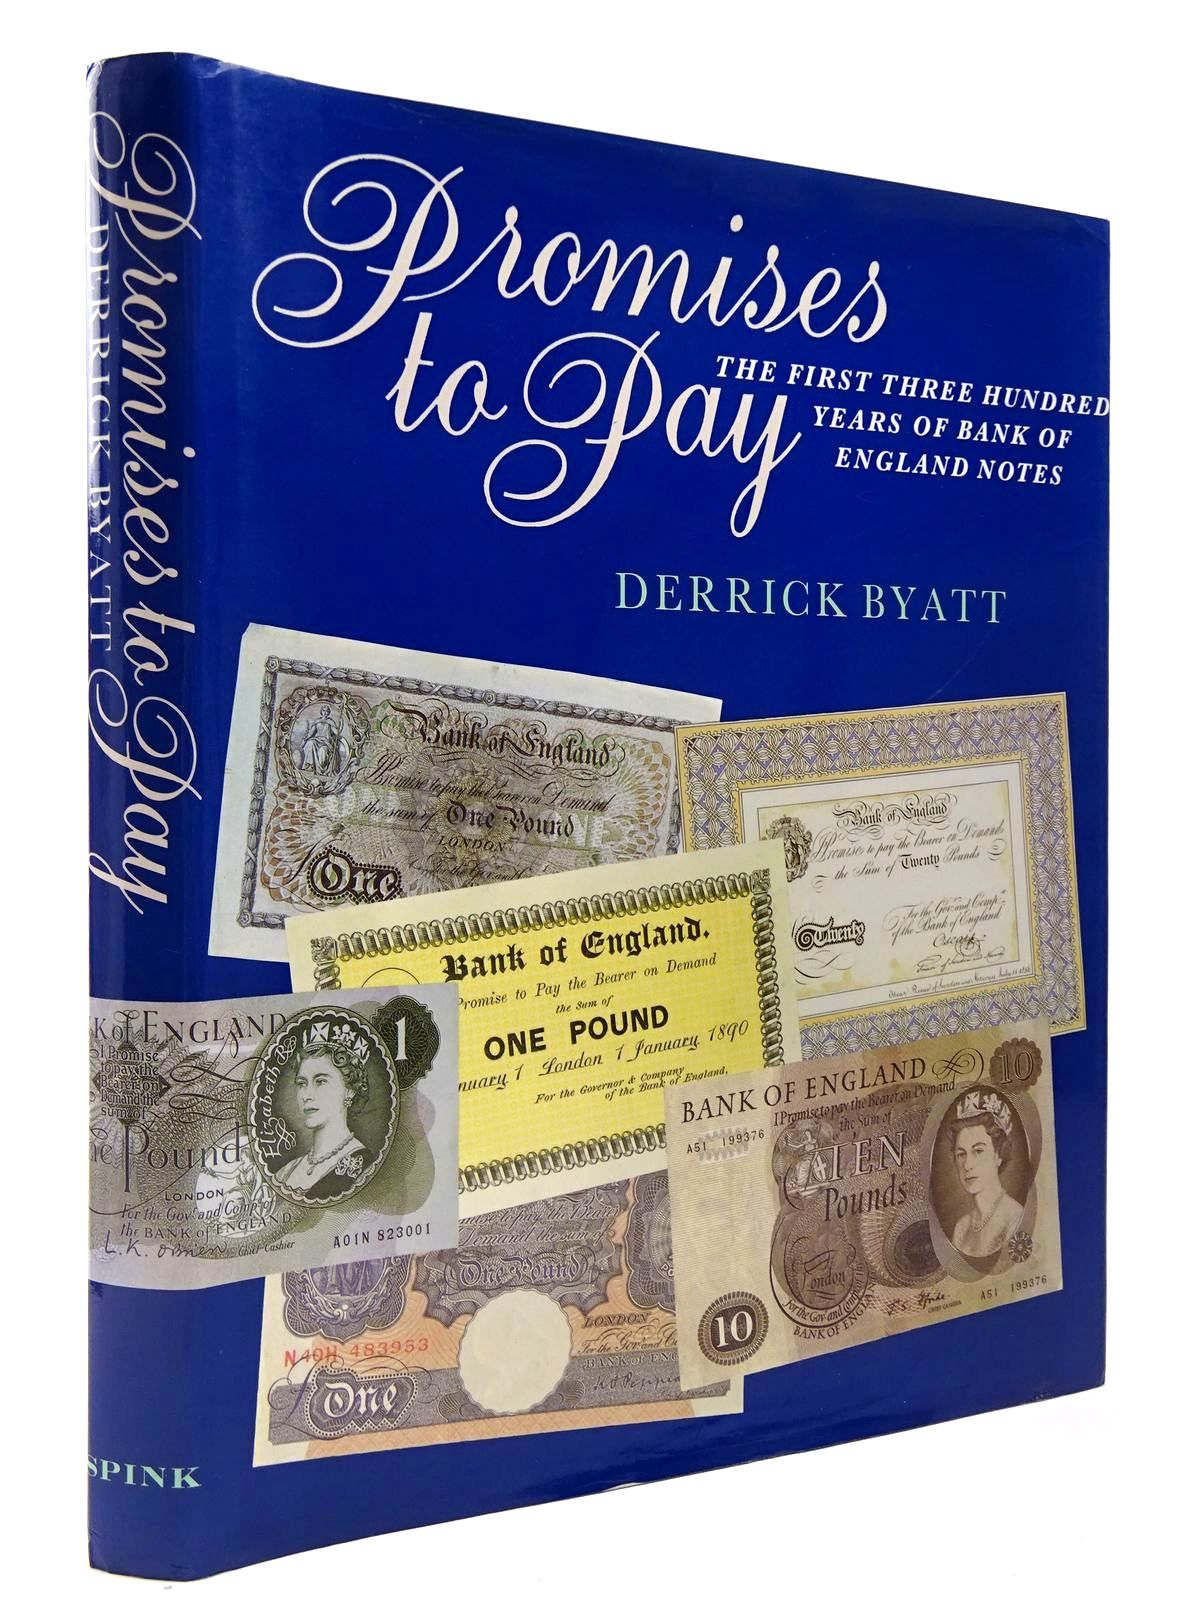 Photo of PROMISES TO PAY THE FIRST THREE HUNDRED YEARS OF BANK OF ENGLAND NOTES written by Byatt, Derrick published by Spink & Son Ltd. (STOCK CODE: 2129755)  for sale by Stella & Rose's Books